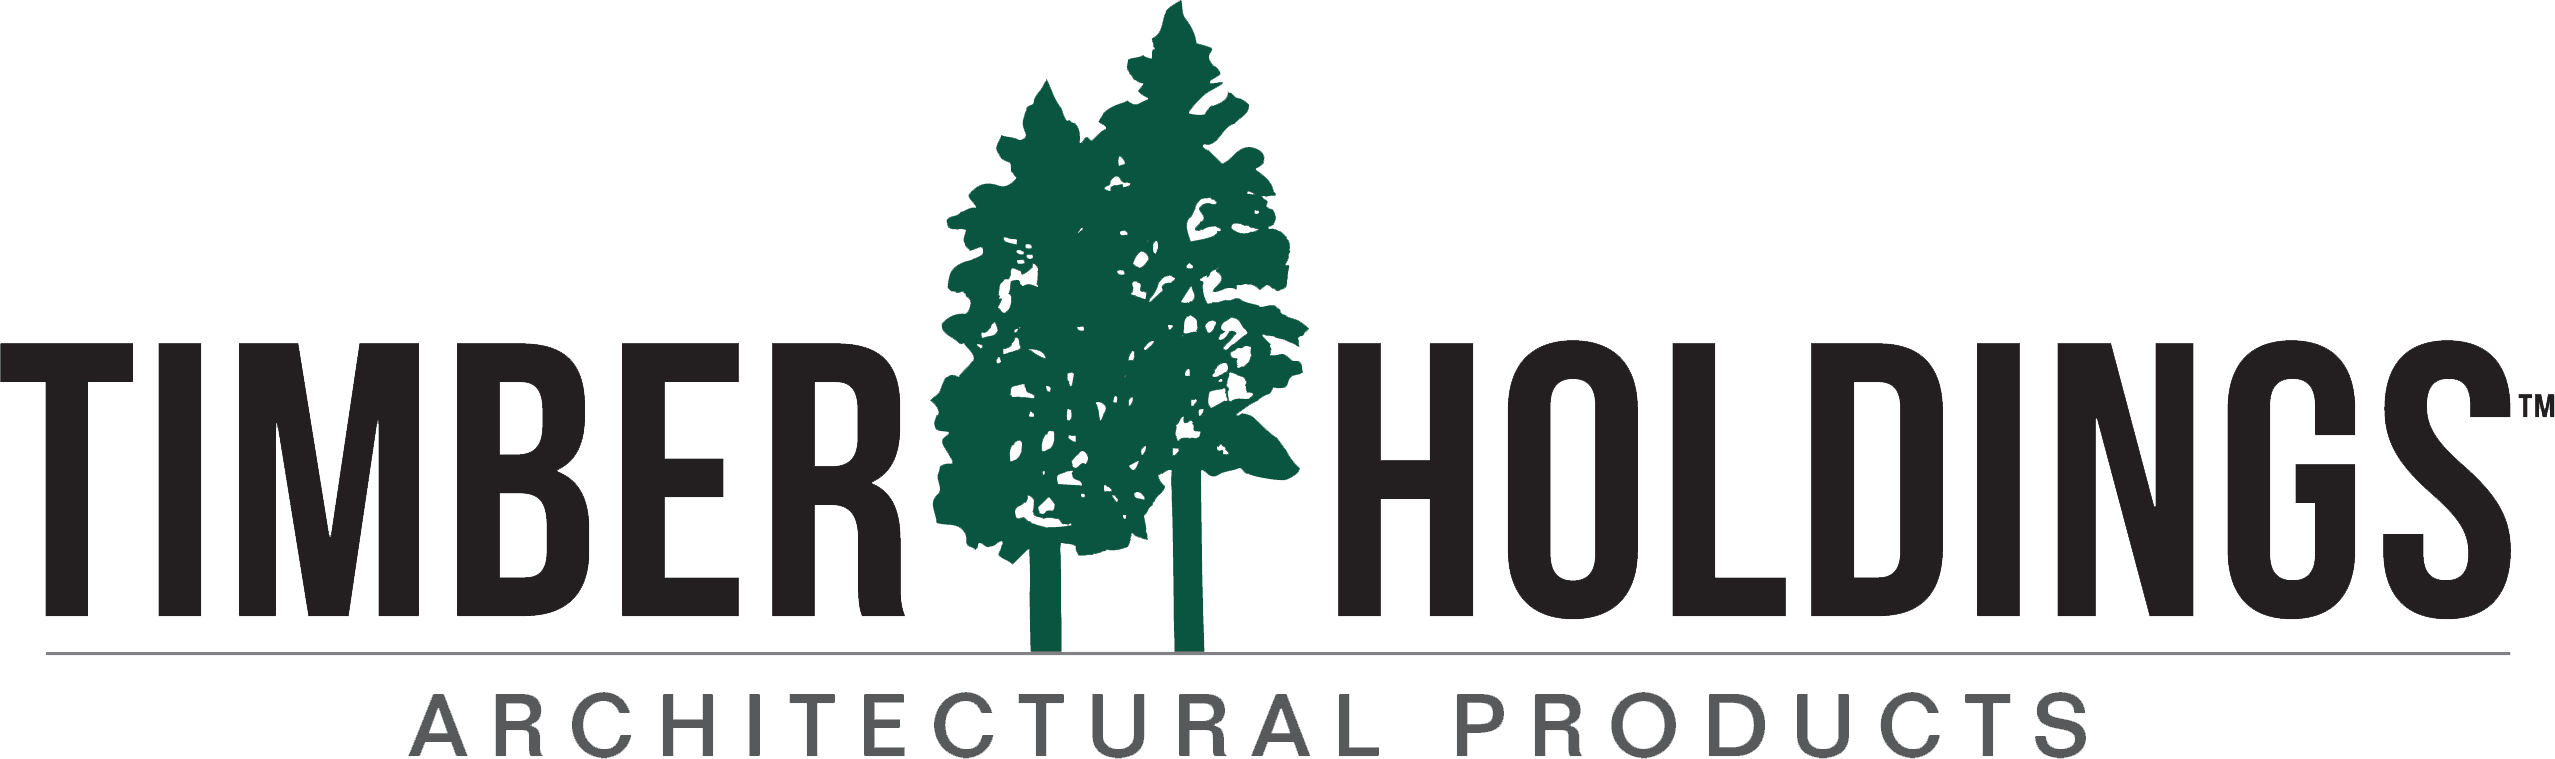 Timber Holdings Architectural Products